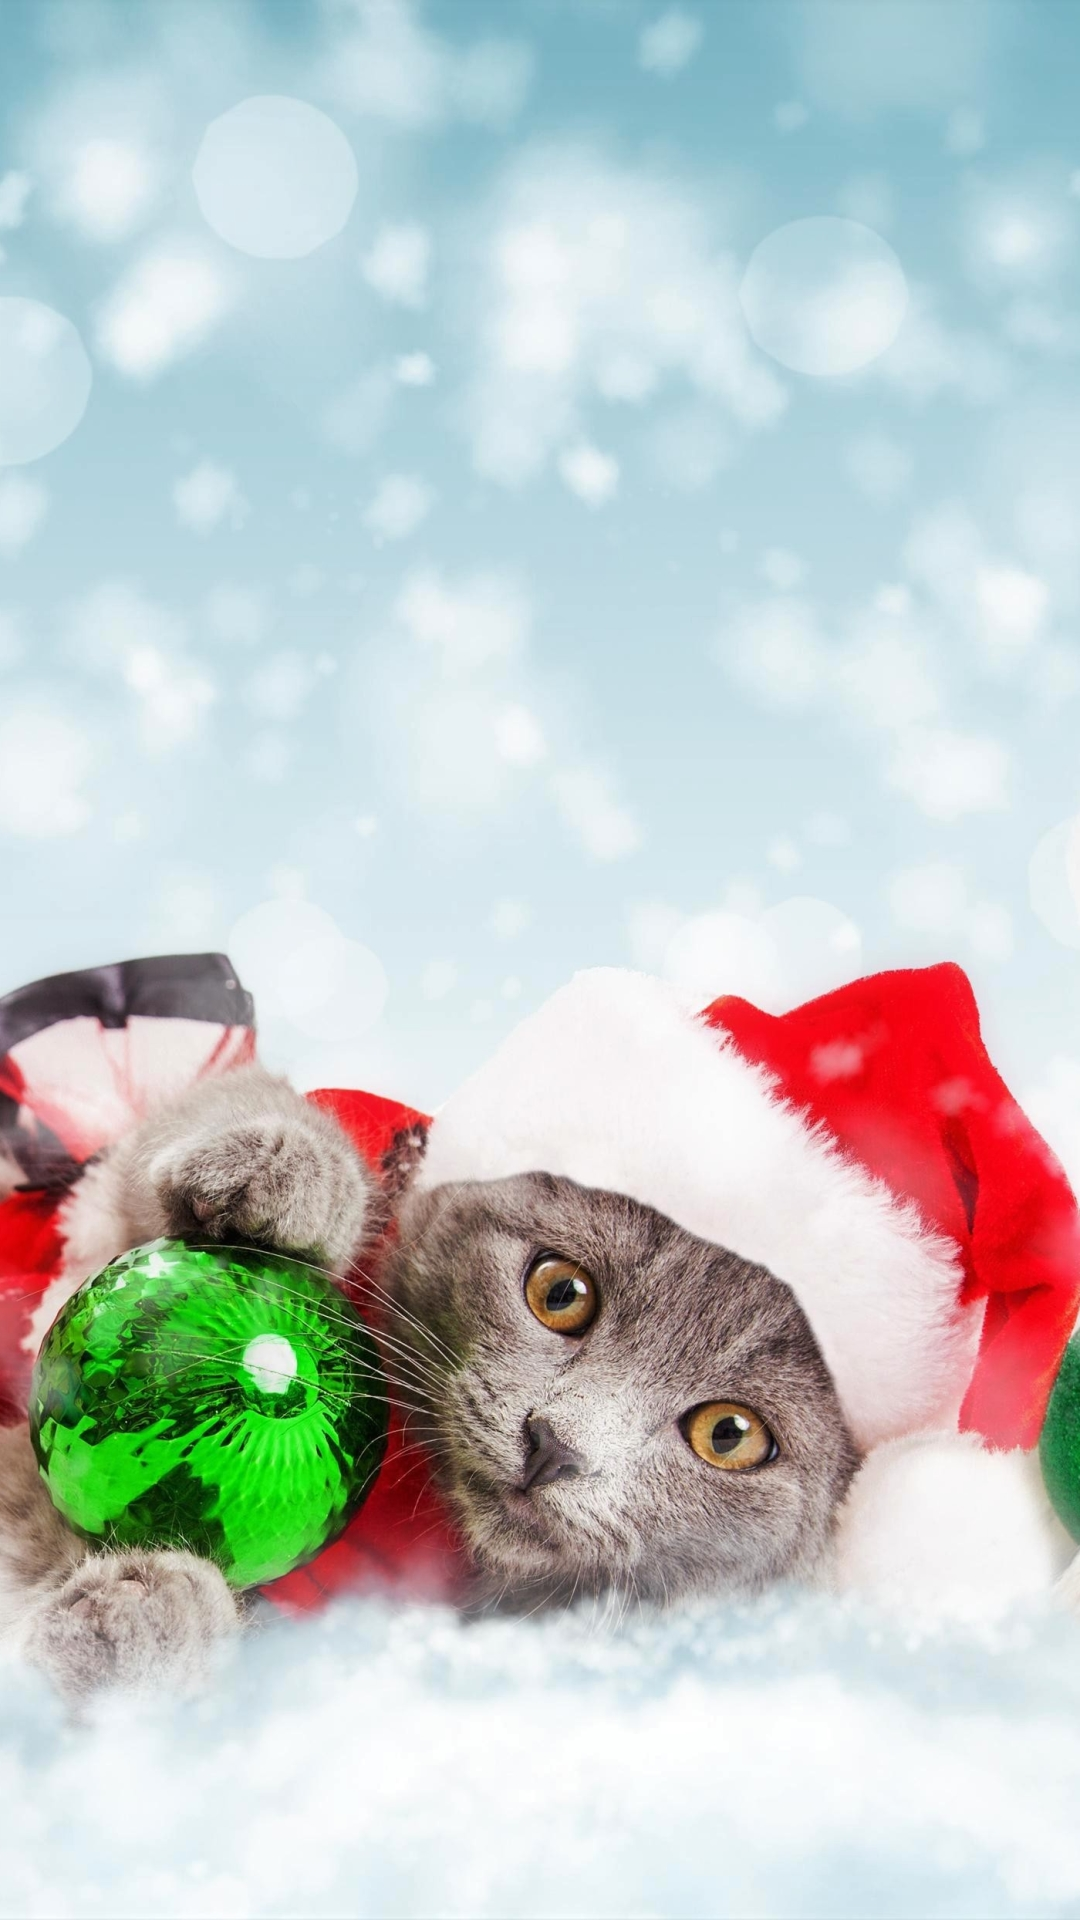 holiday wallpaper iphone 7